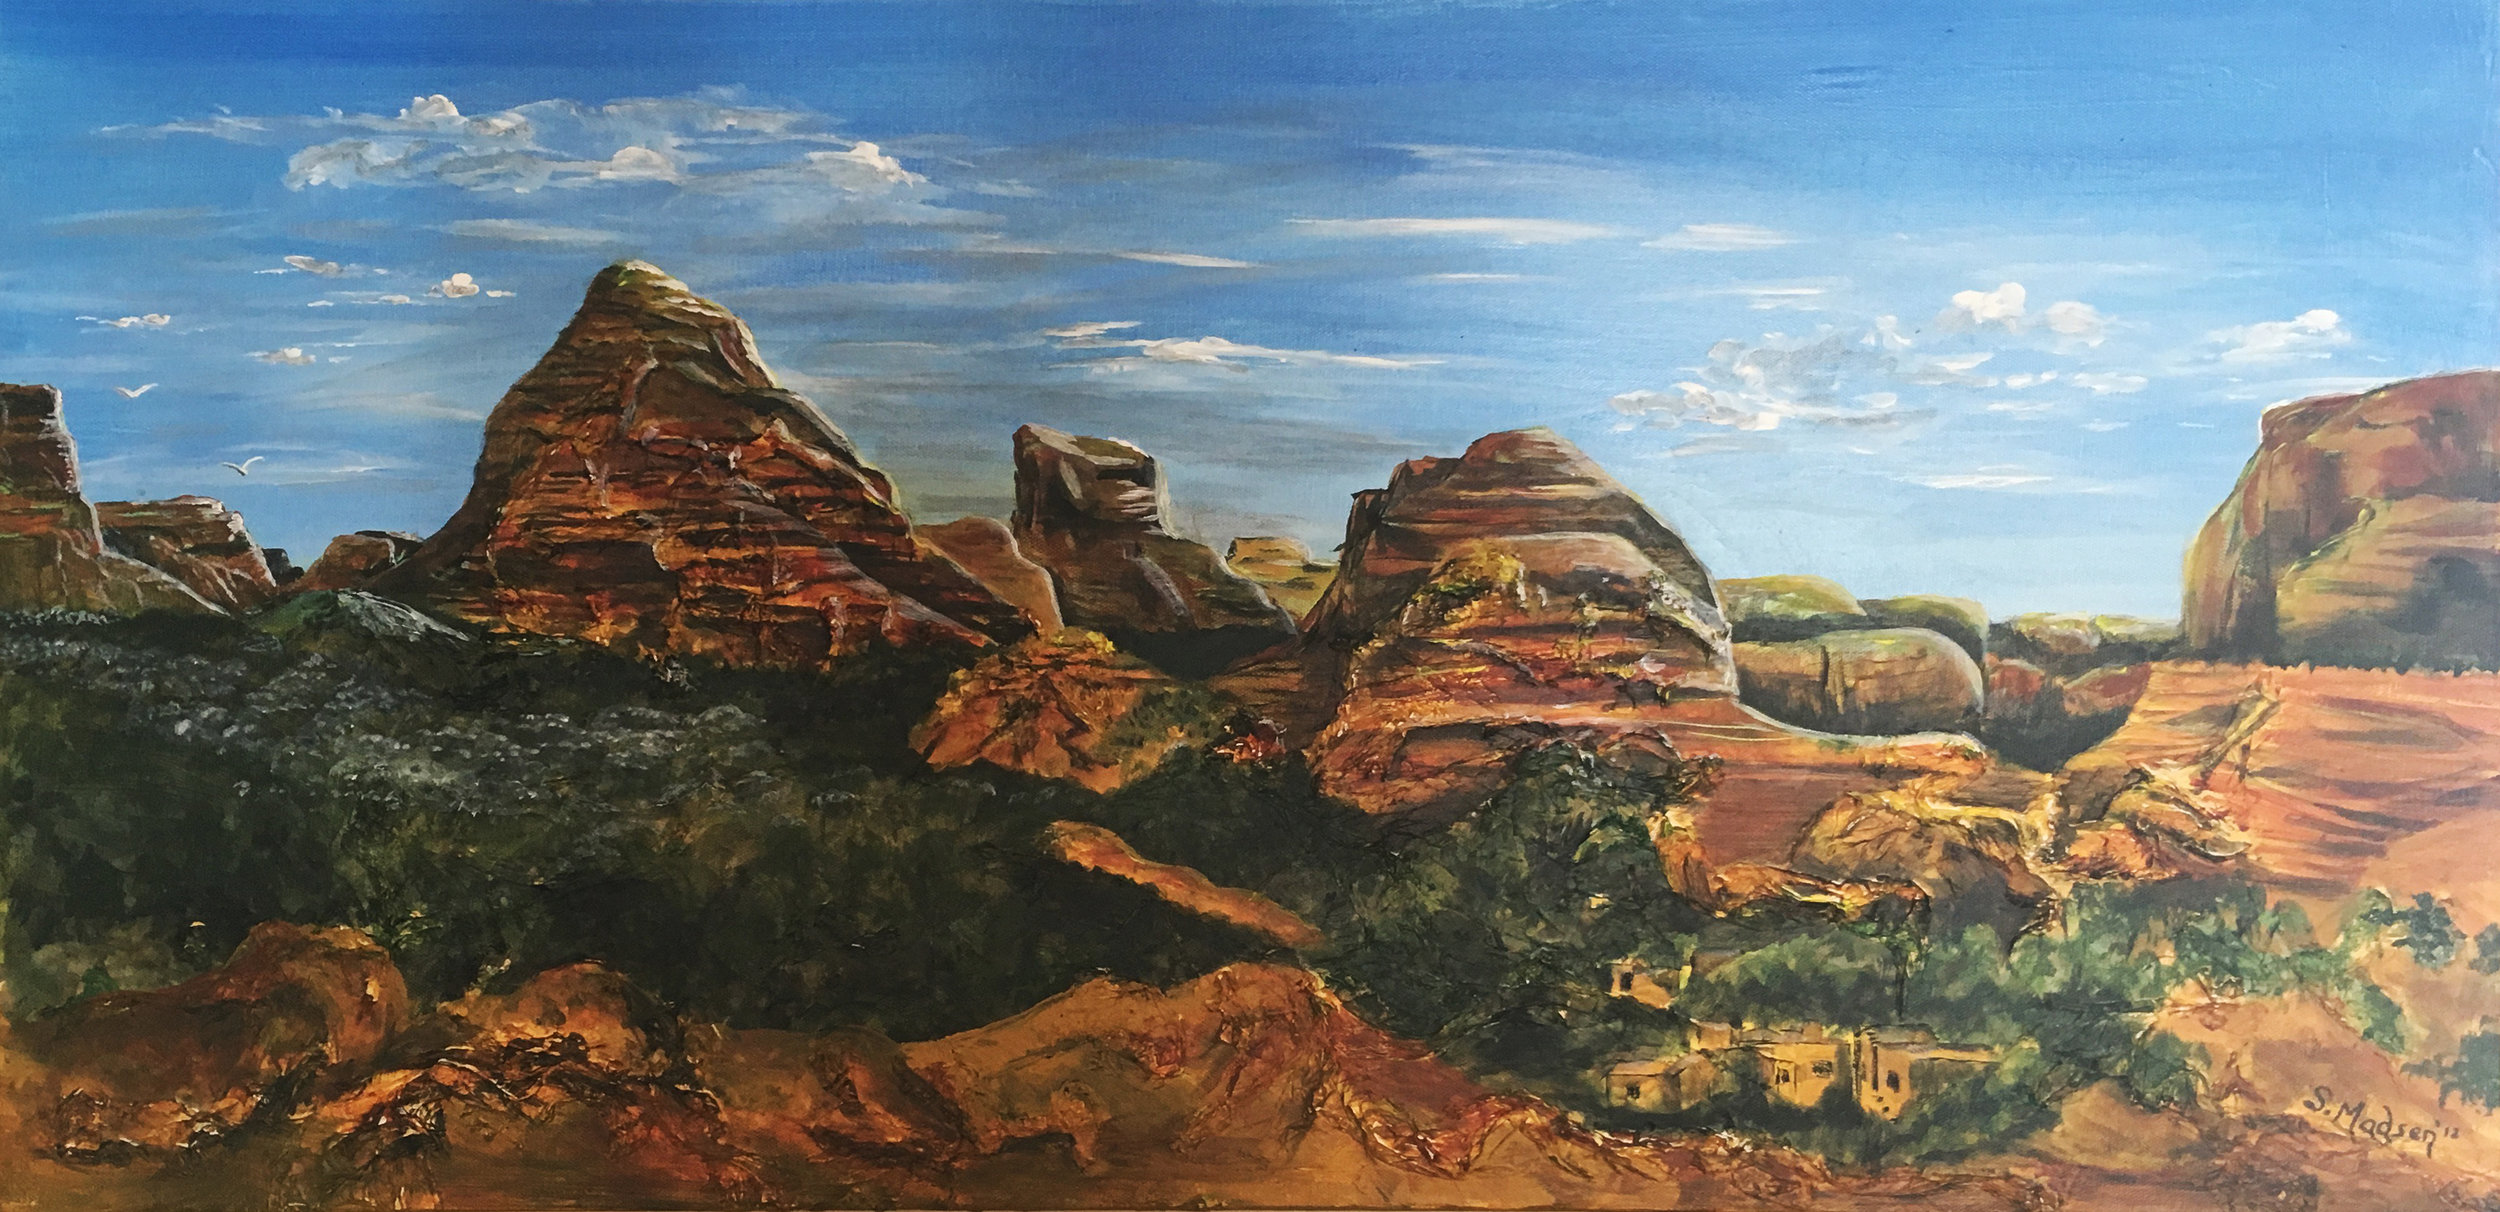 Arizona, mixed media on canvas - private collection